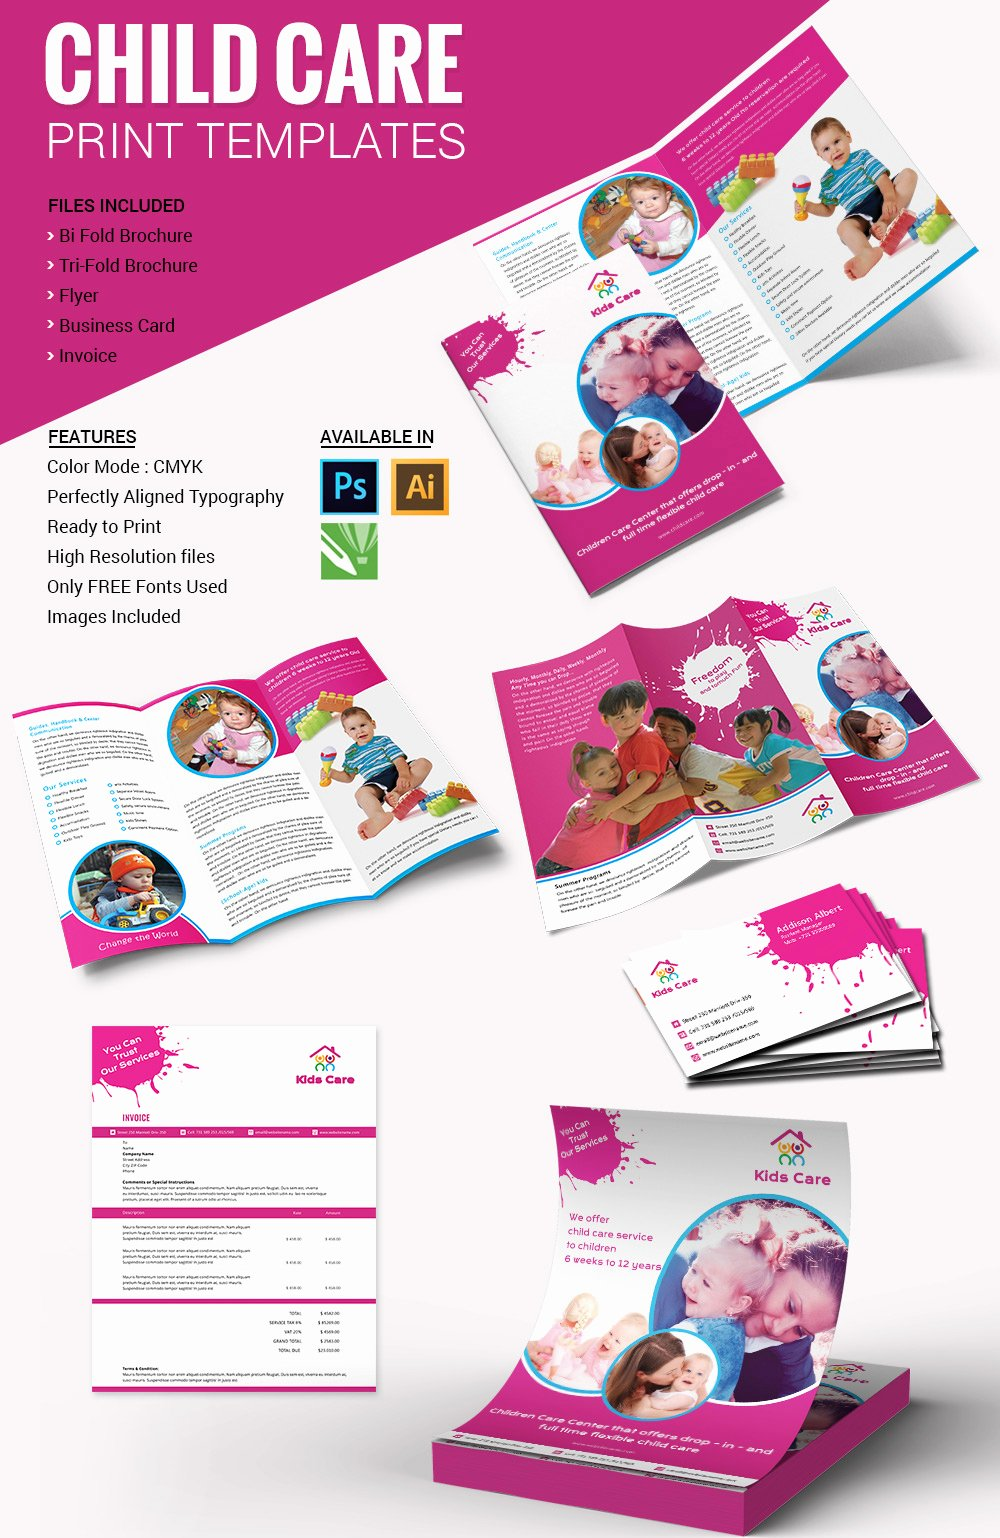 Child Care Flyer Template Inspirational 10 Beautiful Child Care Brochure Templates